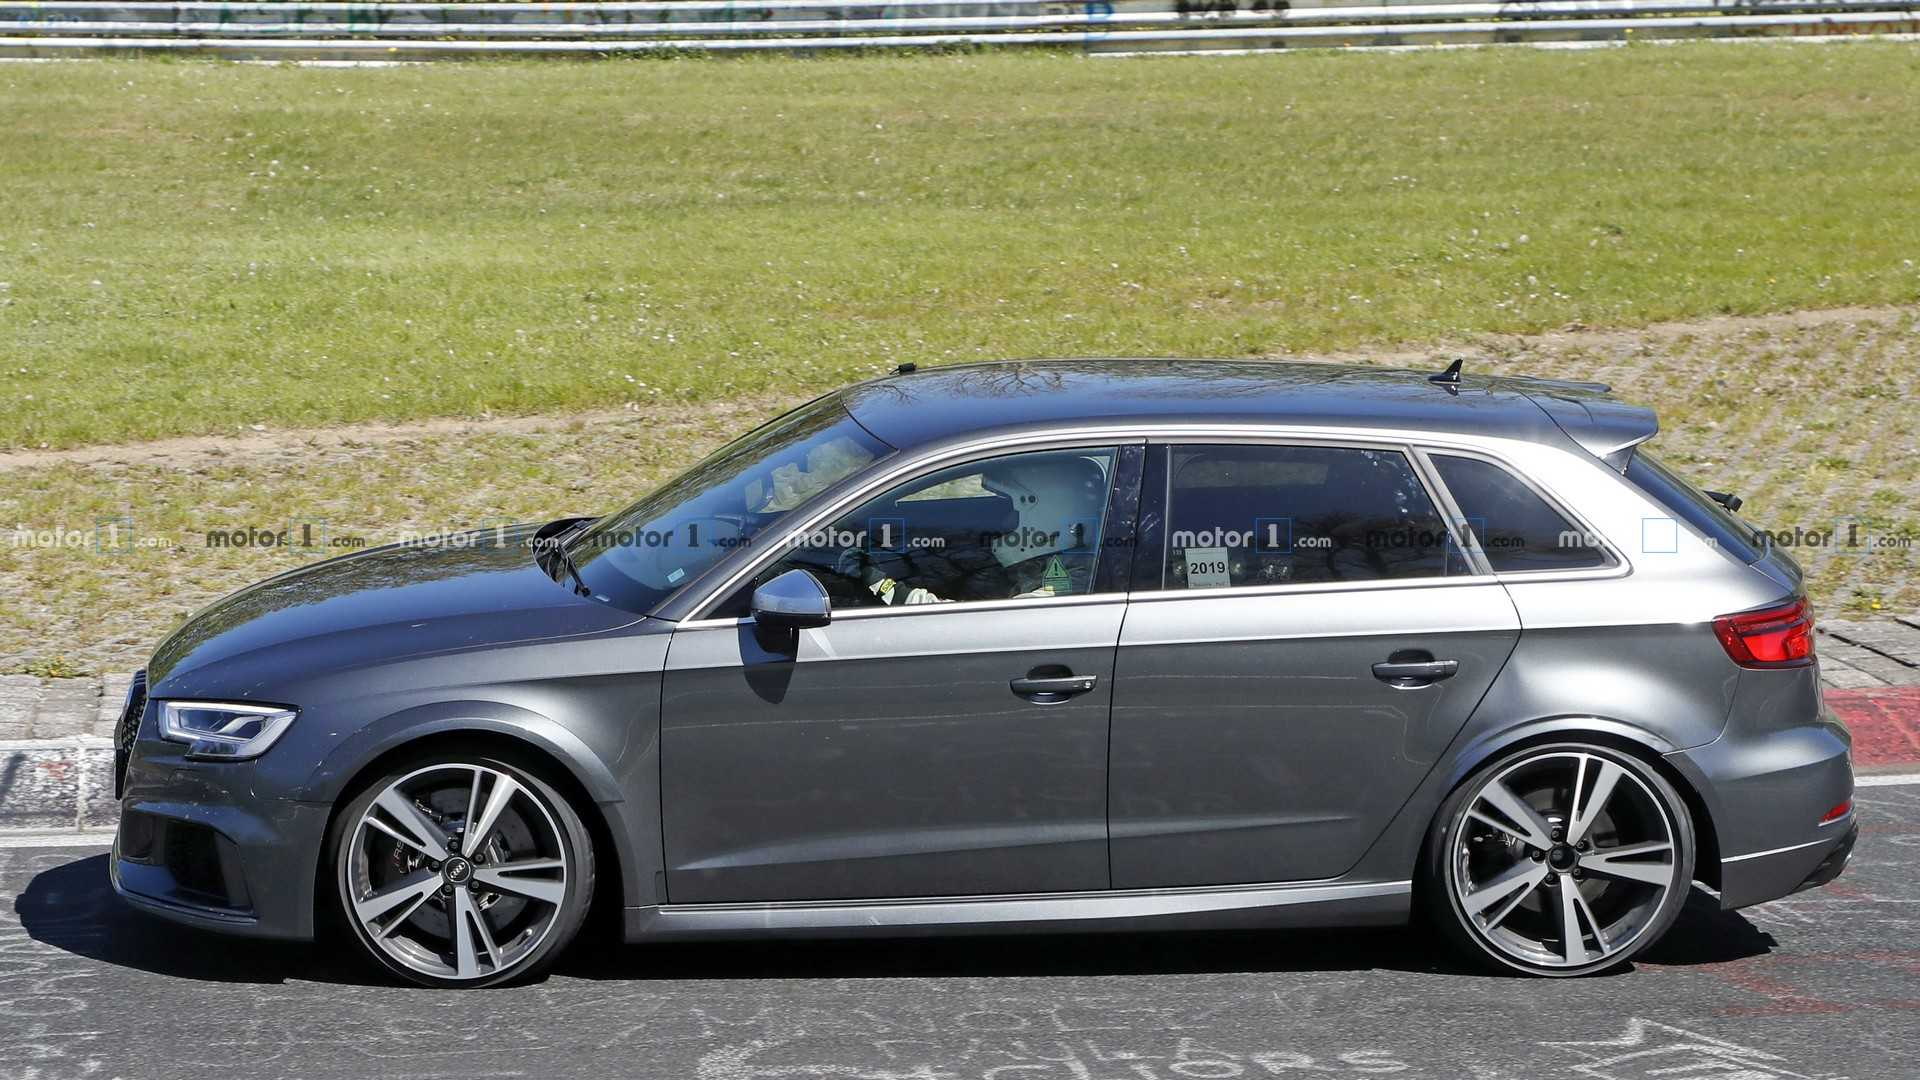 Next-Gen Audi RS3 Makes Spy Photo Debut At Nurburgring